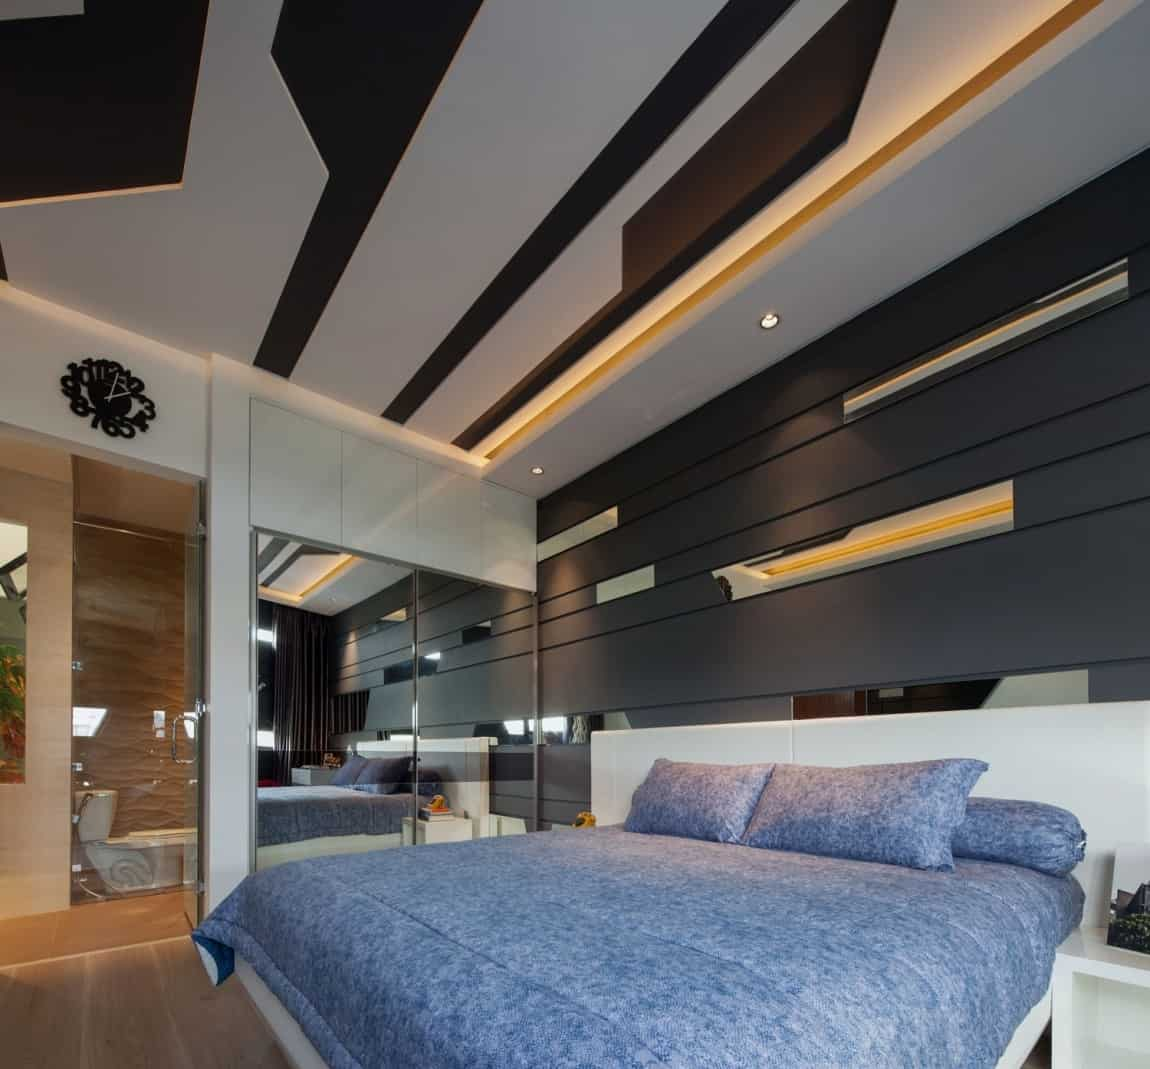 House with Creative Ceilings and Gl Floors on modern restaurant interior design, modern living room interior design, modern wood interior ceiling design, modern house roof designs, modern office interior design wall, modern house main door designs,